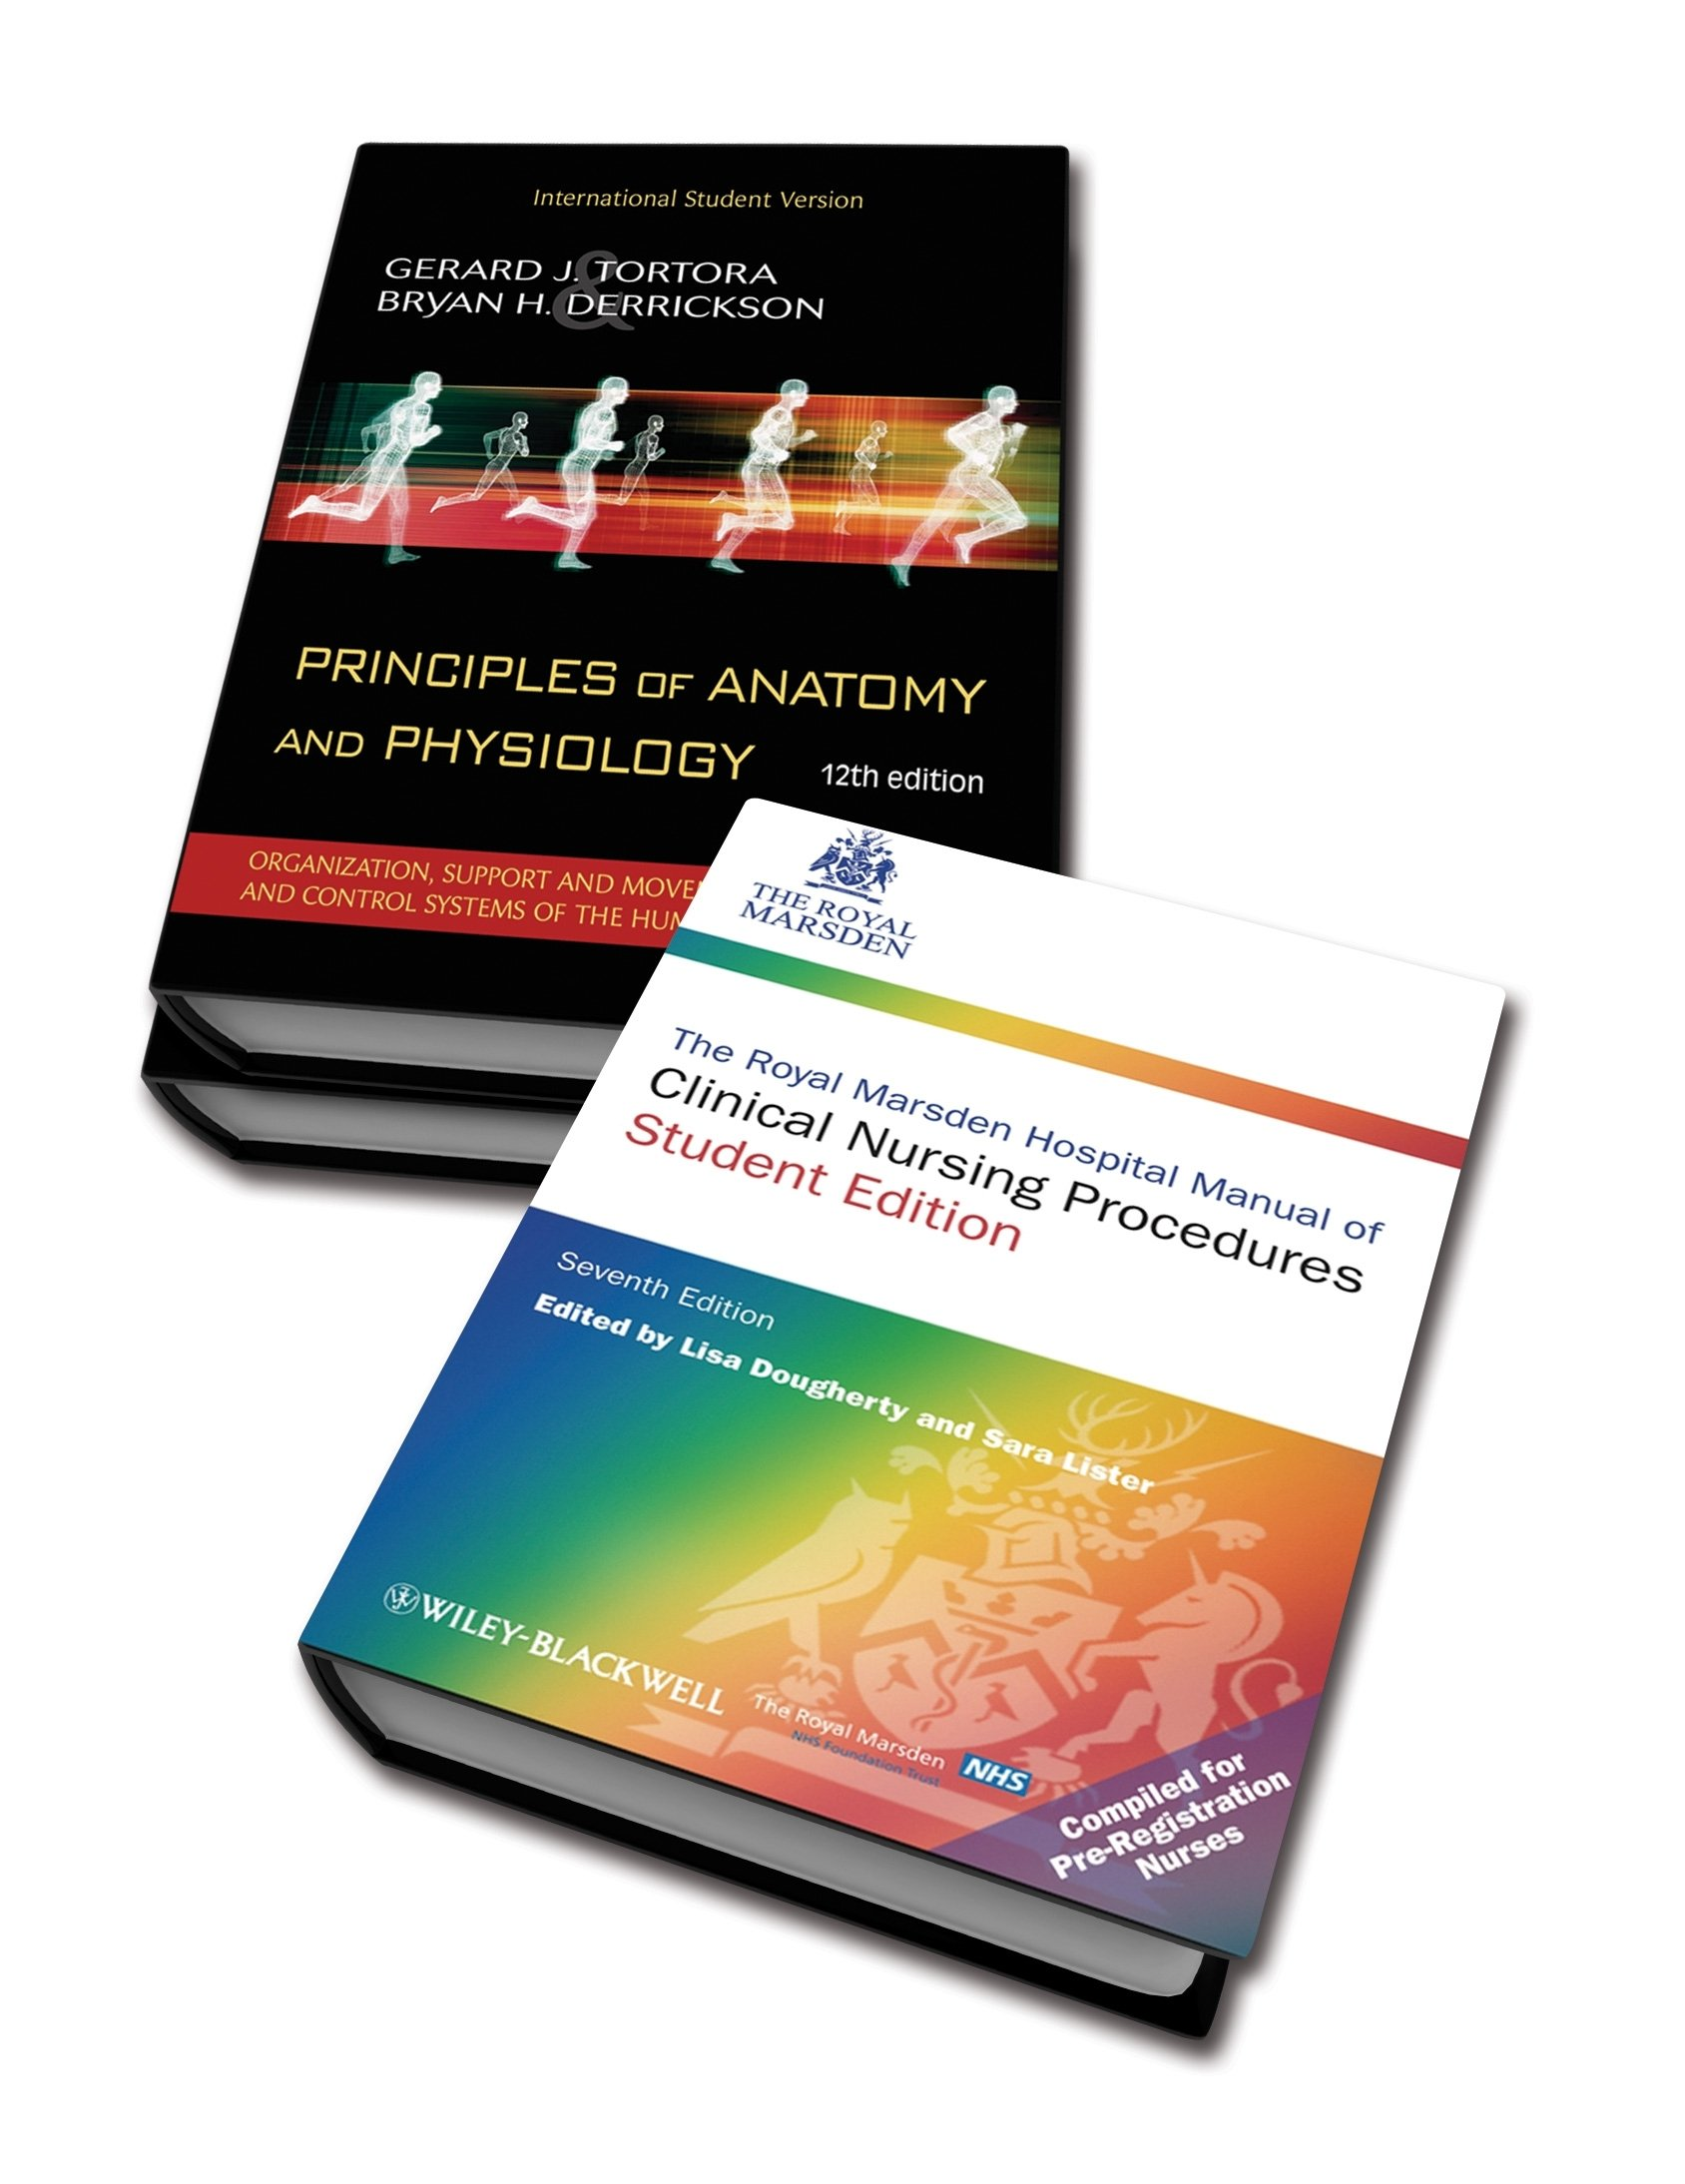 Principles of Anatomy & Physiology, 12th Ed and The Royal Marsden ...